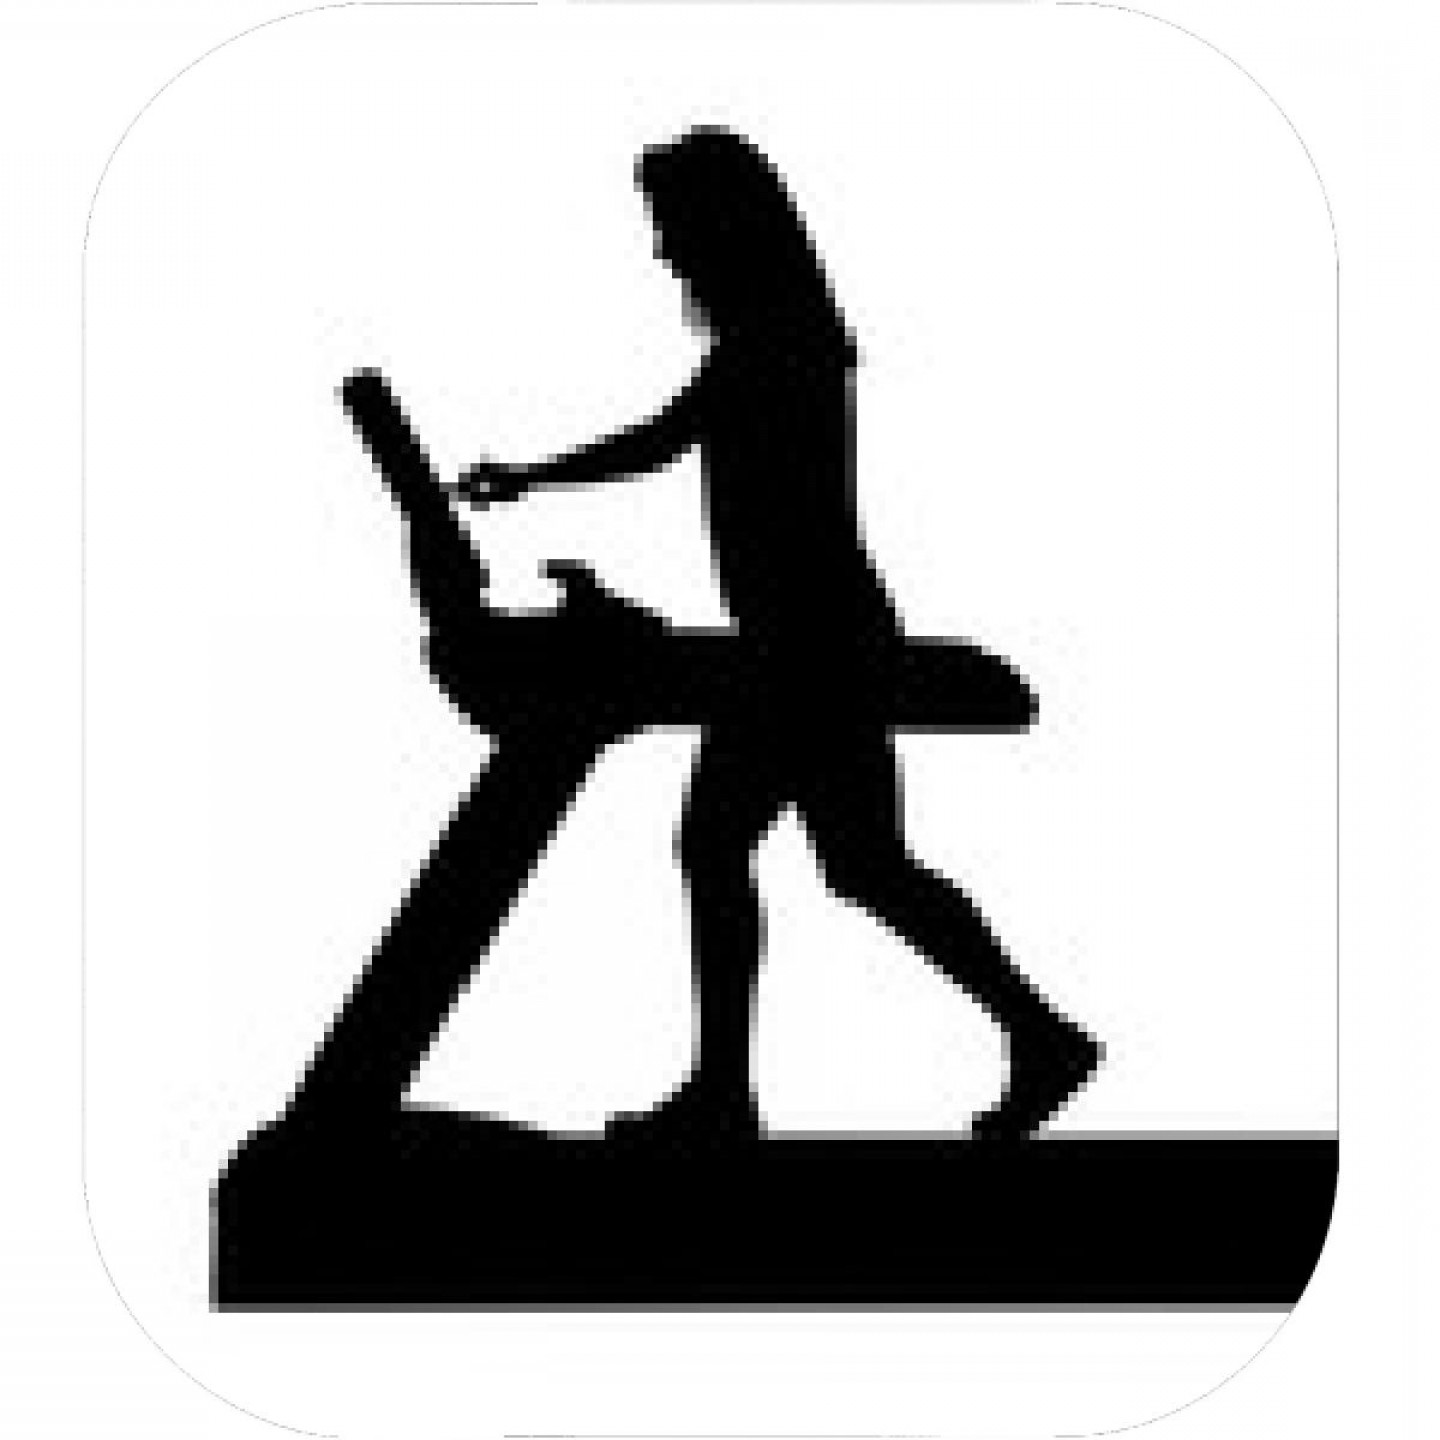 Vector Silhouette Of Girl Running Track: Black And White Image Of Young Woman Doing Exercises On Elliptical Trainer